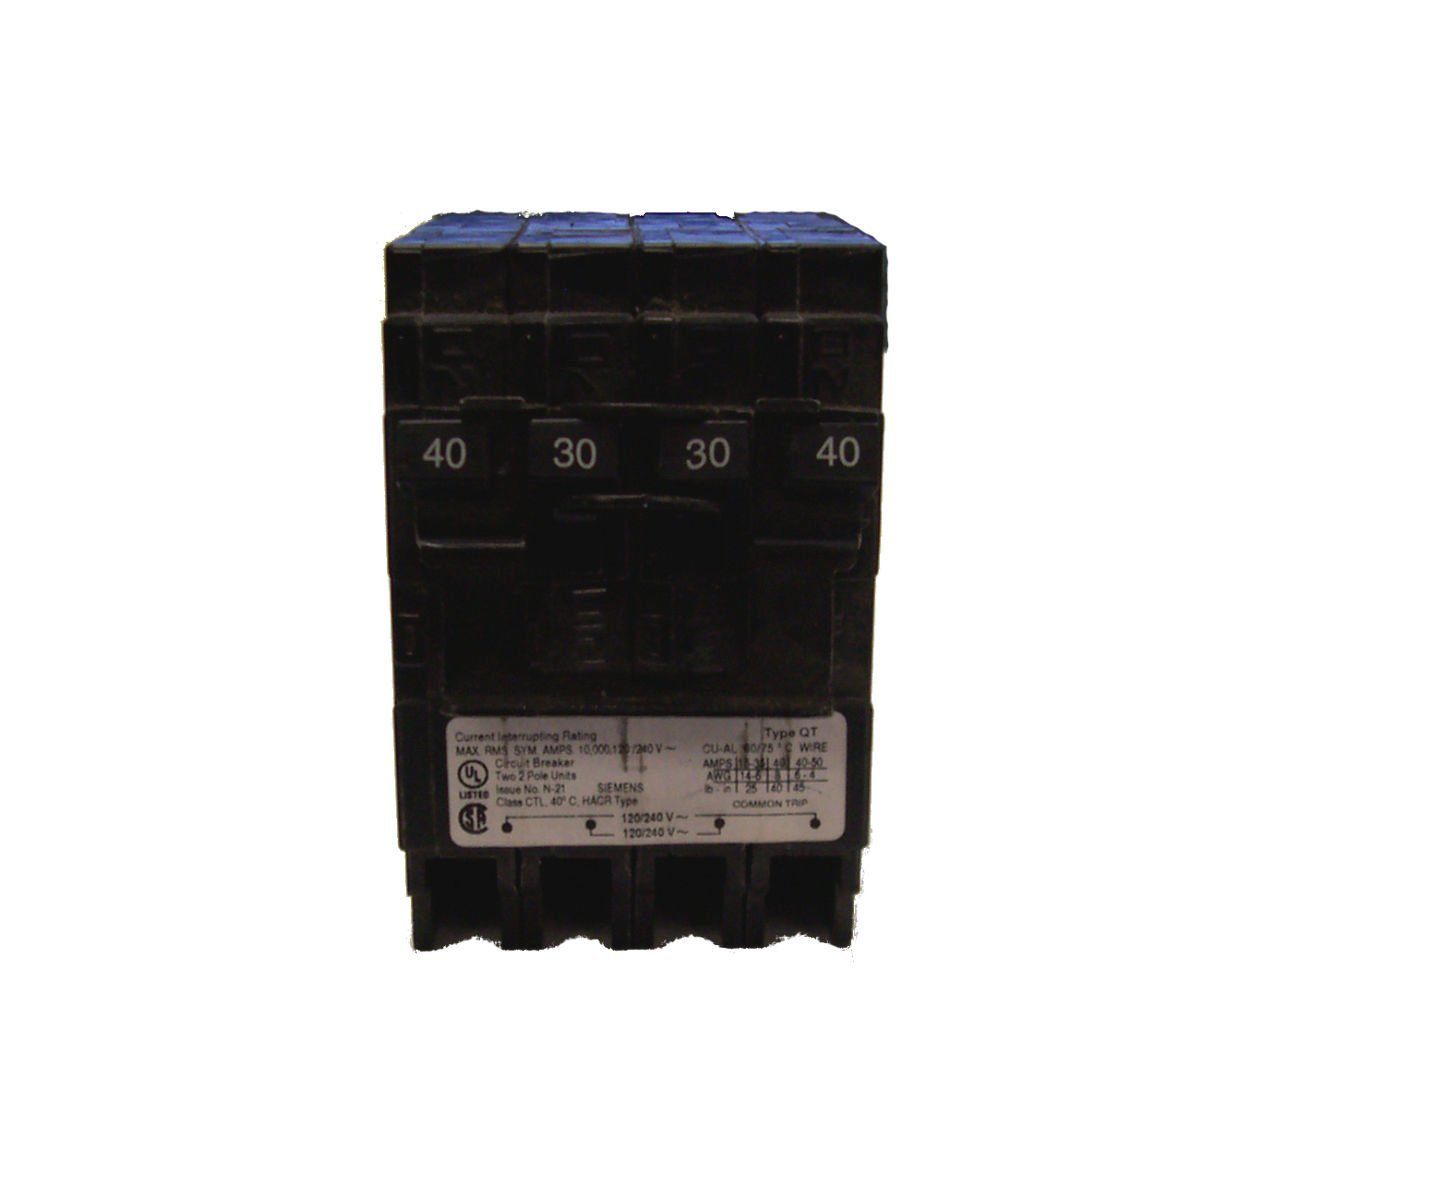 Siemens Q24030CT2 40Amp Double Pole 30Amp Quadplex Circuit Breaker